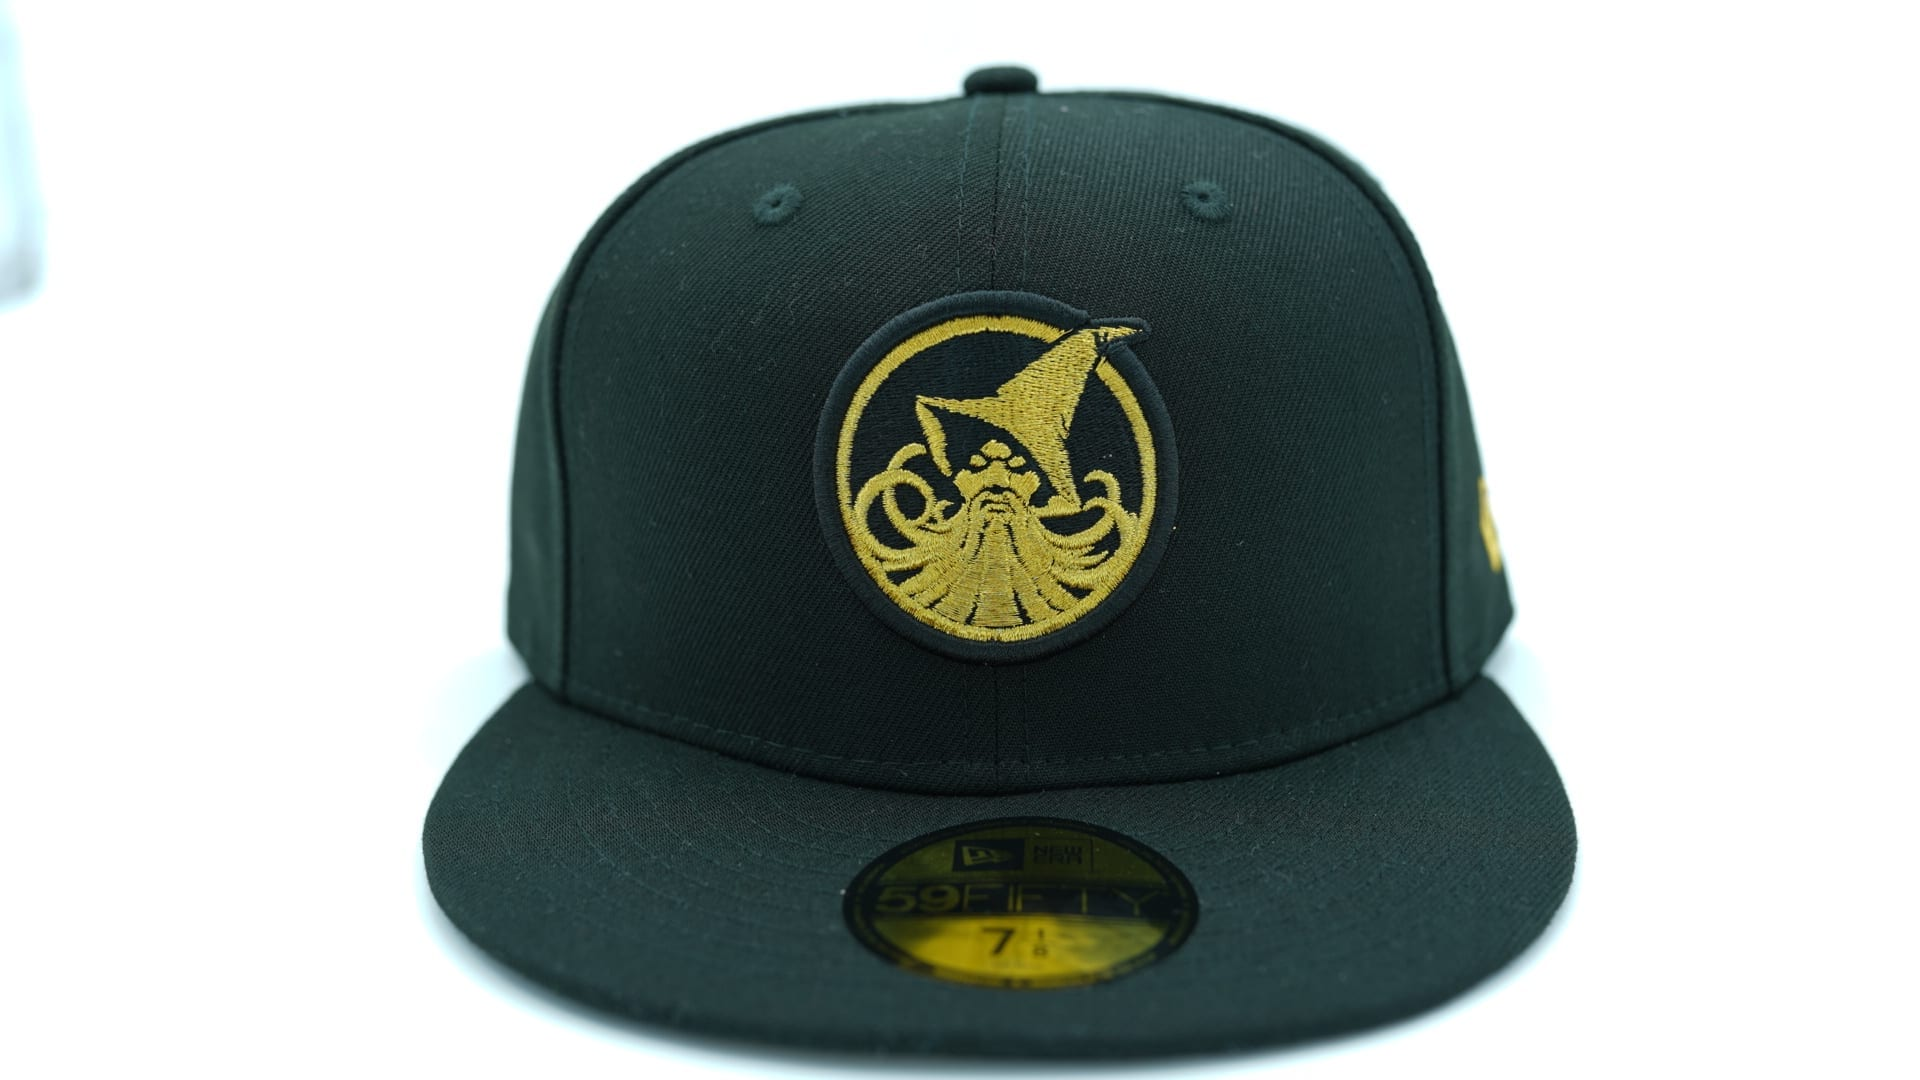 f93243b679d ... discount undefeated 5 strikes fitted baseball cap spring 2013 c173a  c87d6